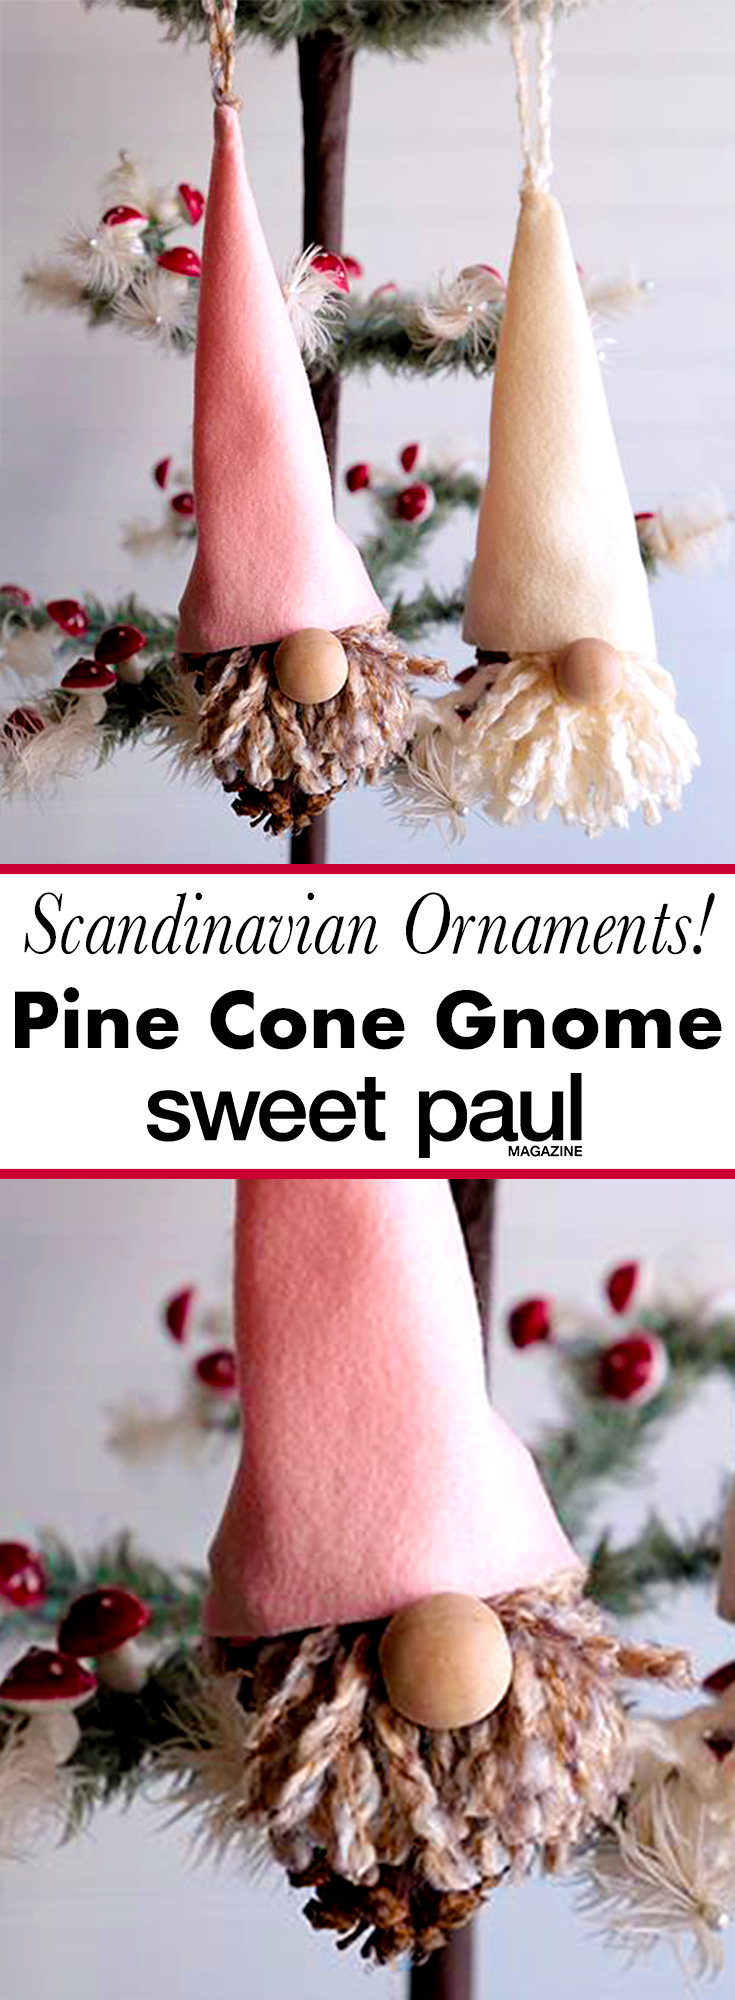 Nordic Pine Cone Gnomes Sweet Paul Magazine Holiday Crafts Xmas Crafts Christmas Crafts